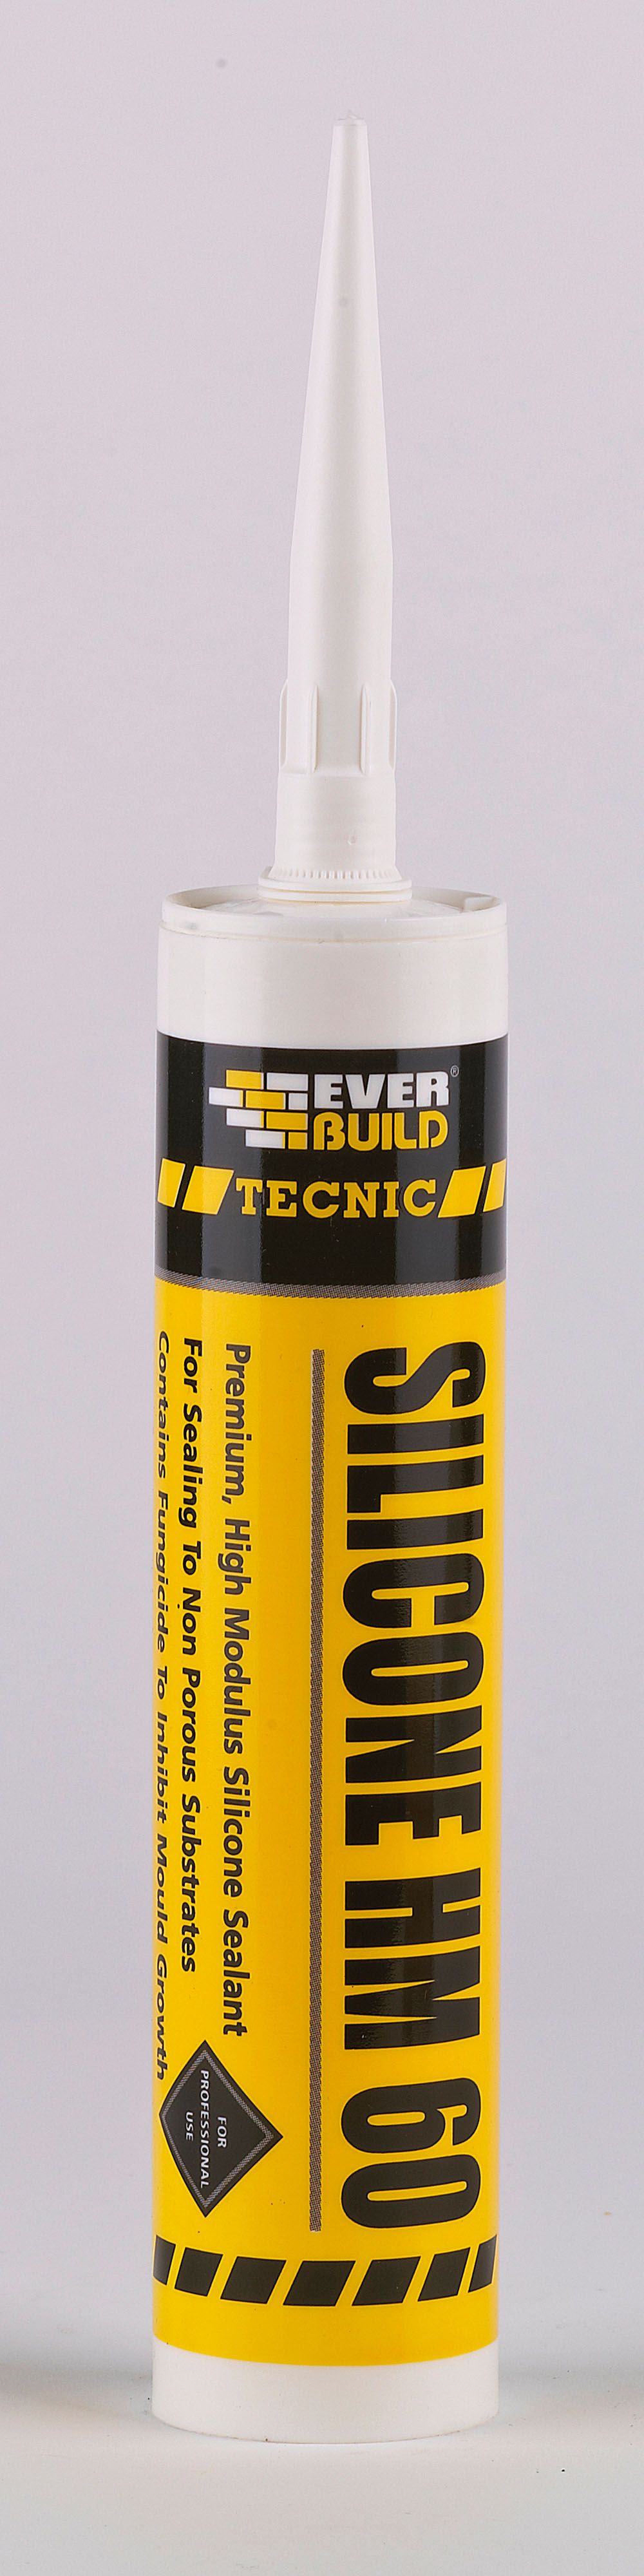 Everbuild Silicone Hm60 White Construction Sealants Limited